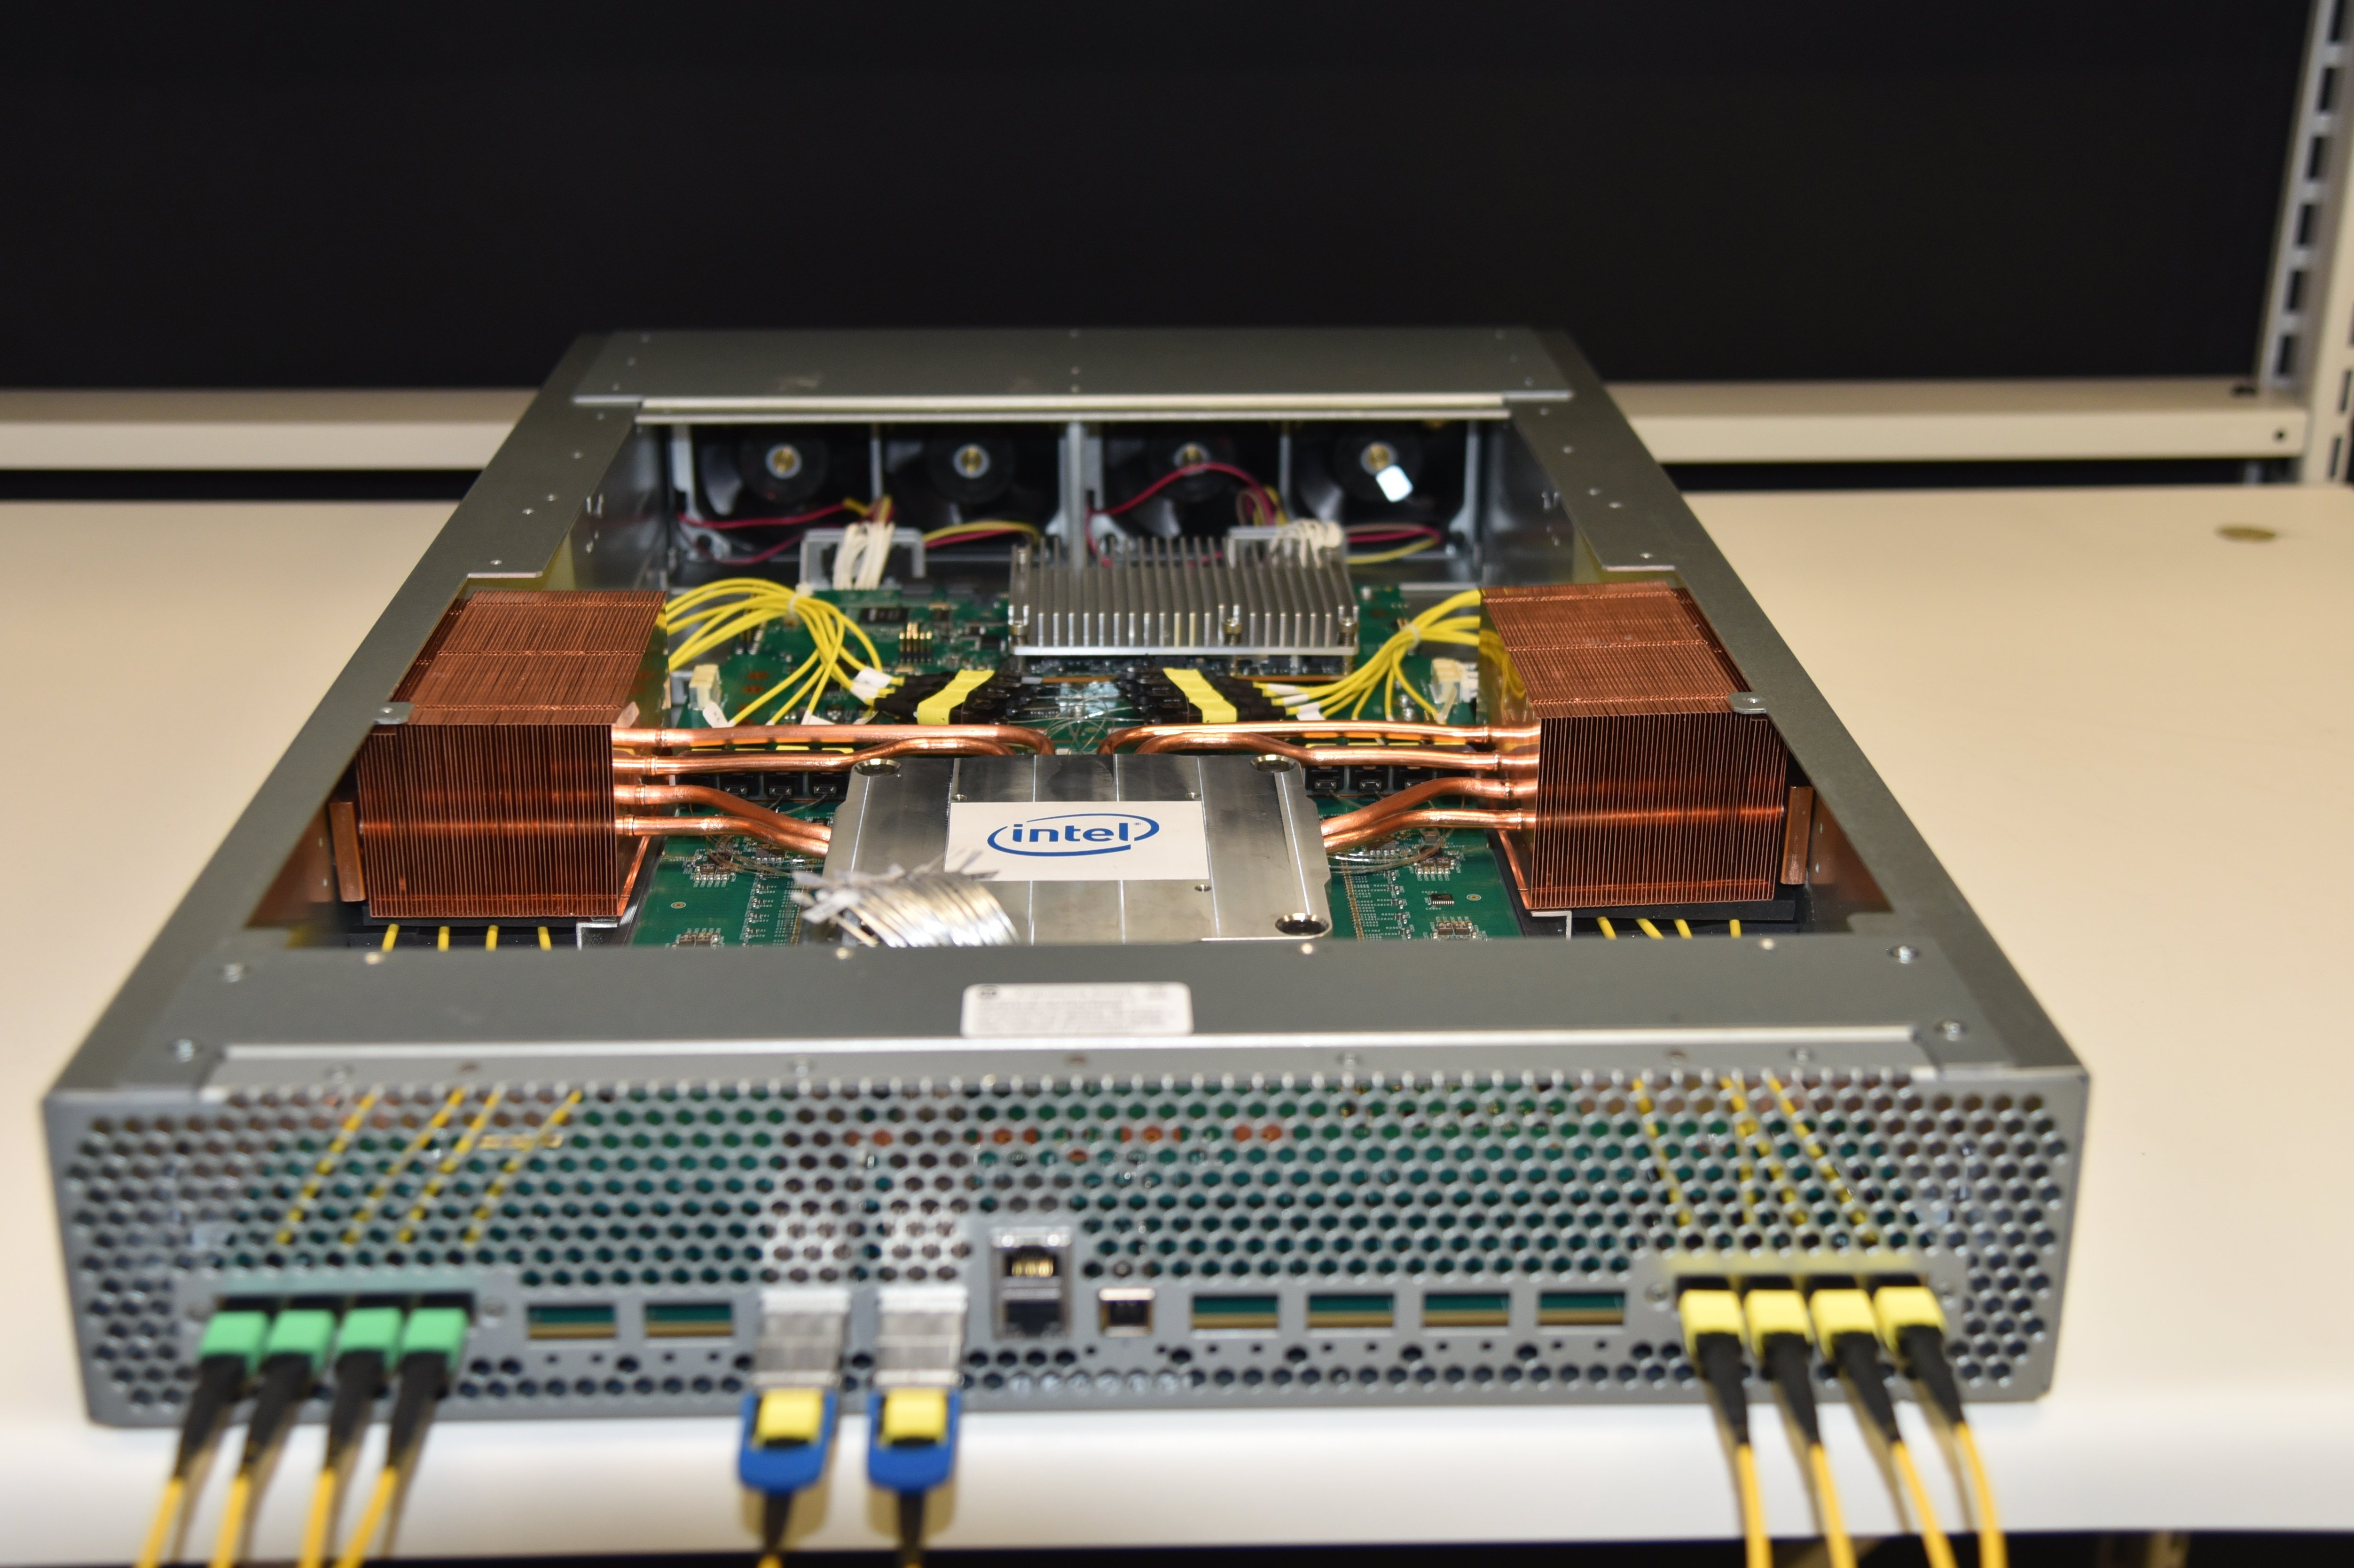 Intel-Co-Packaged-Optics-Ethernet-Switch-2